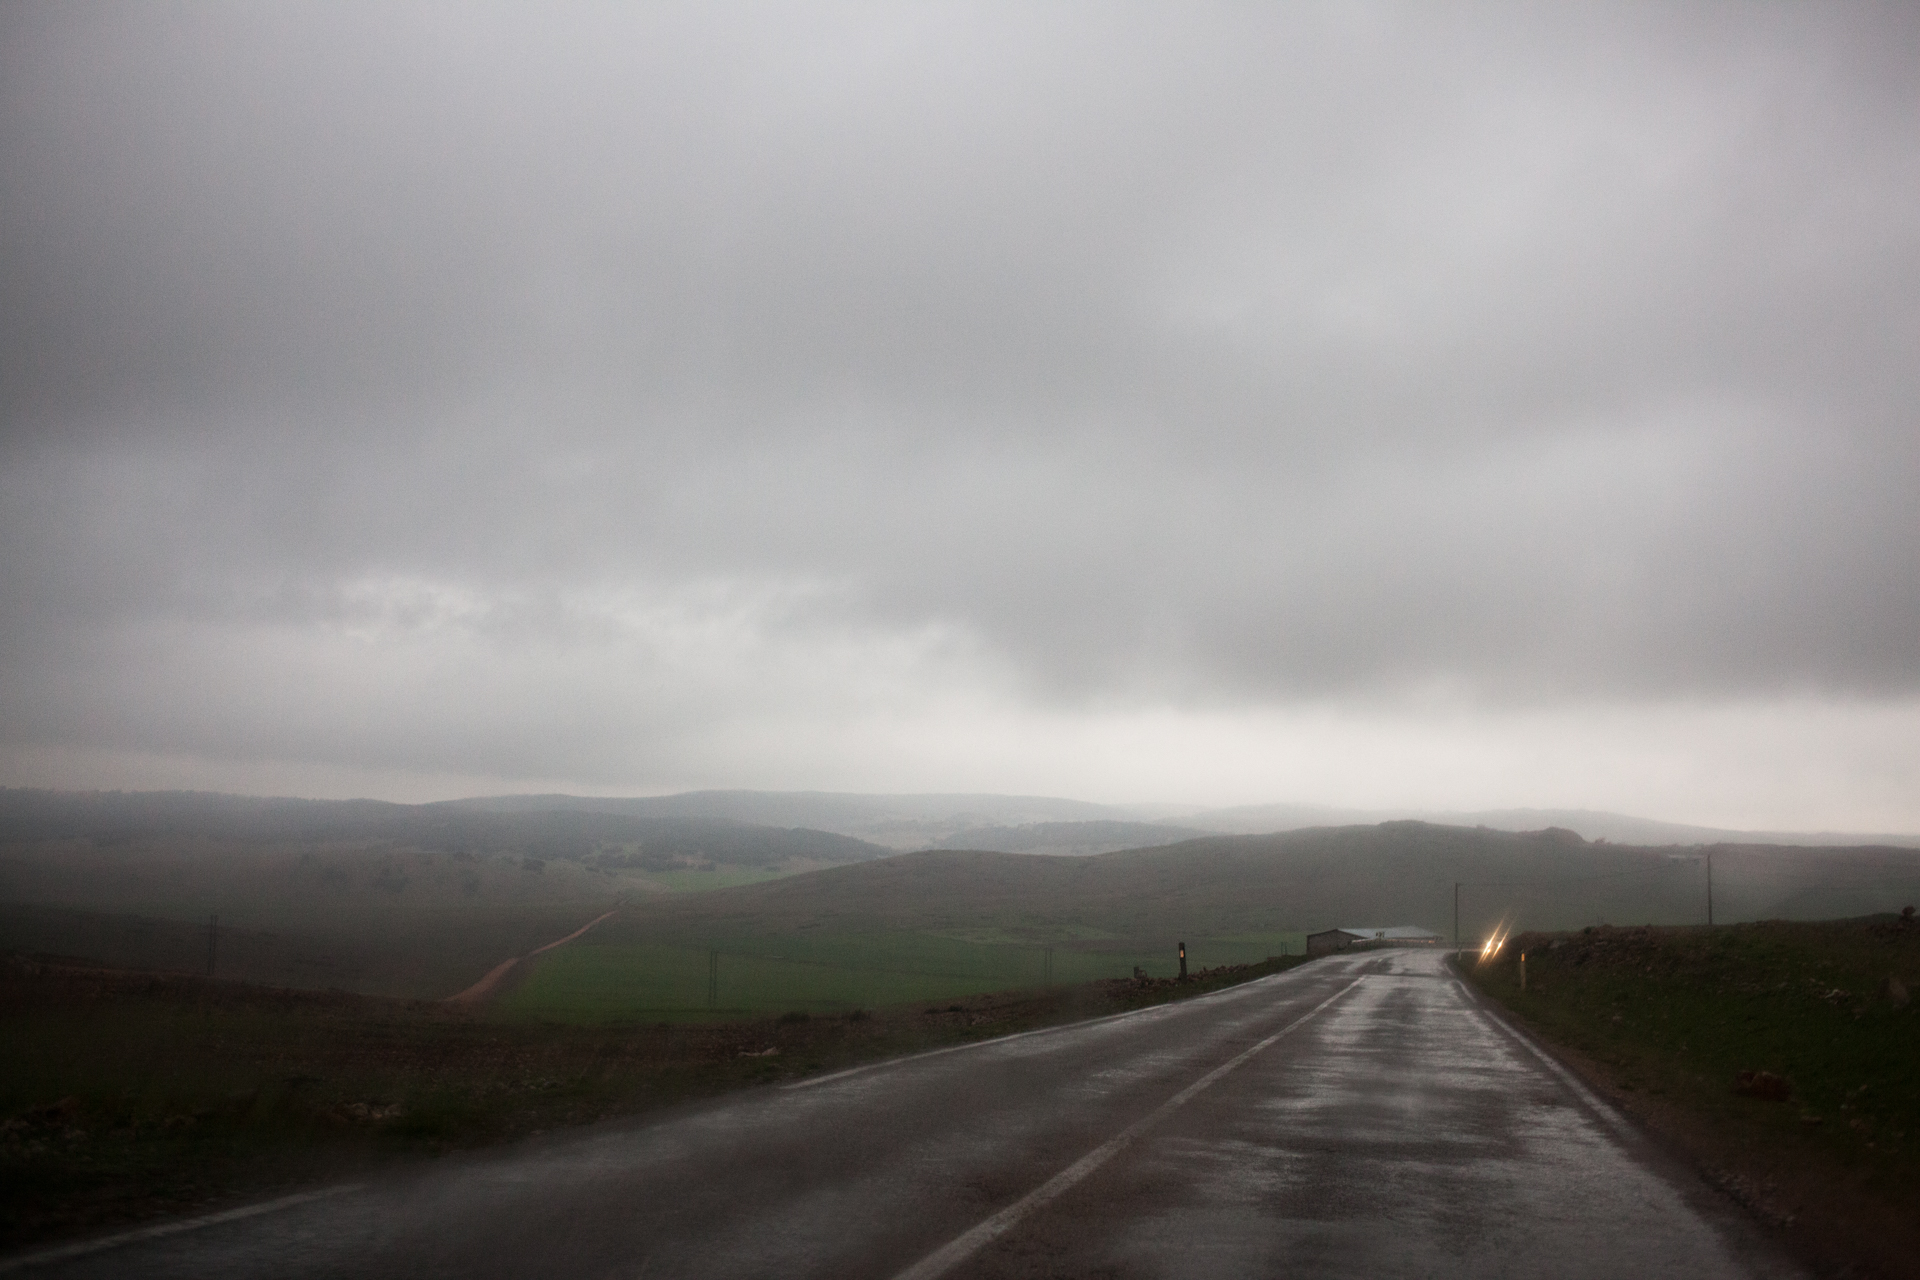 A gloomy road in front of us.